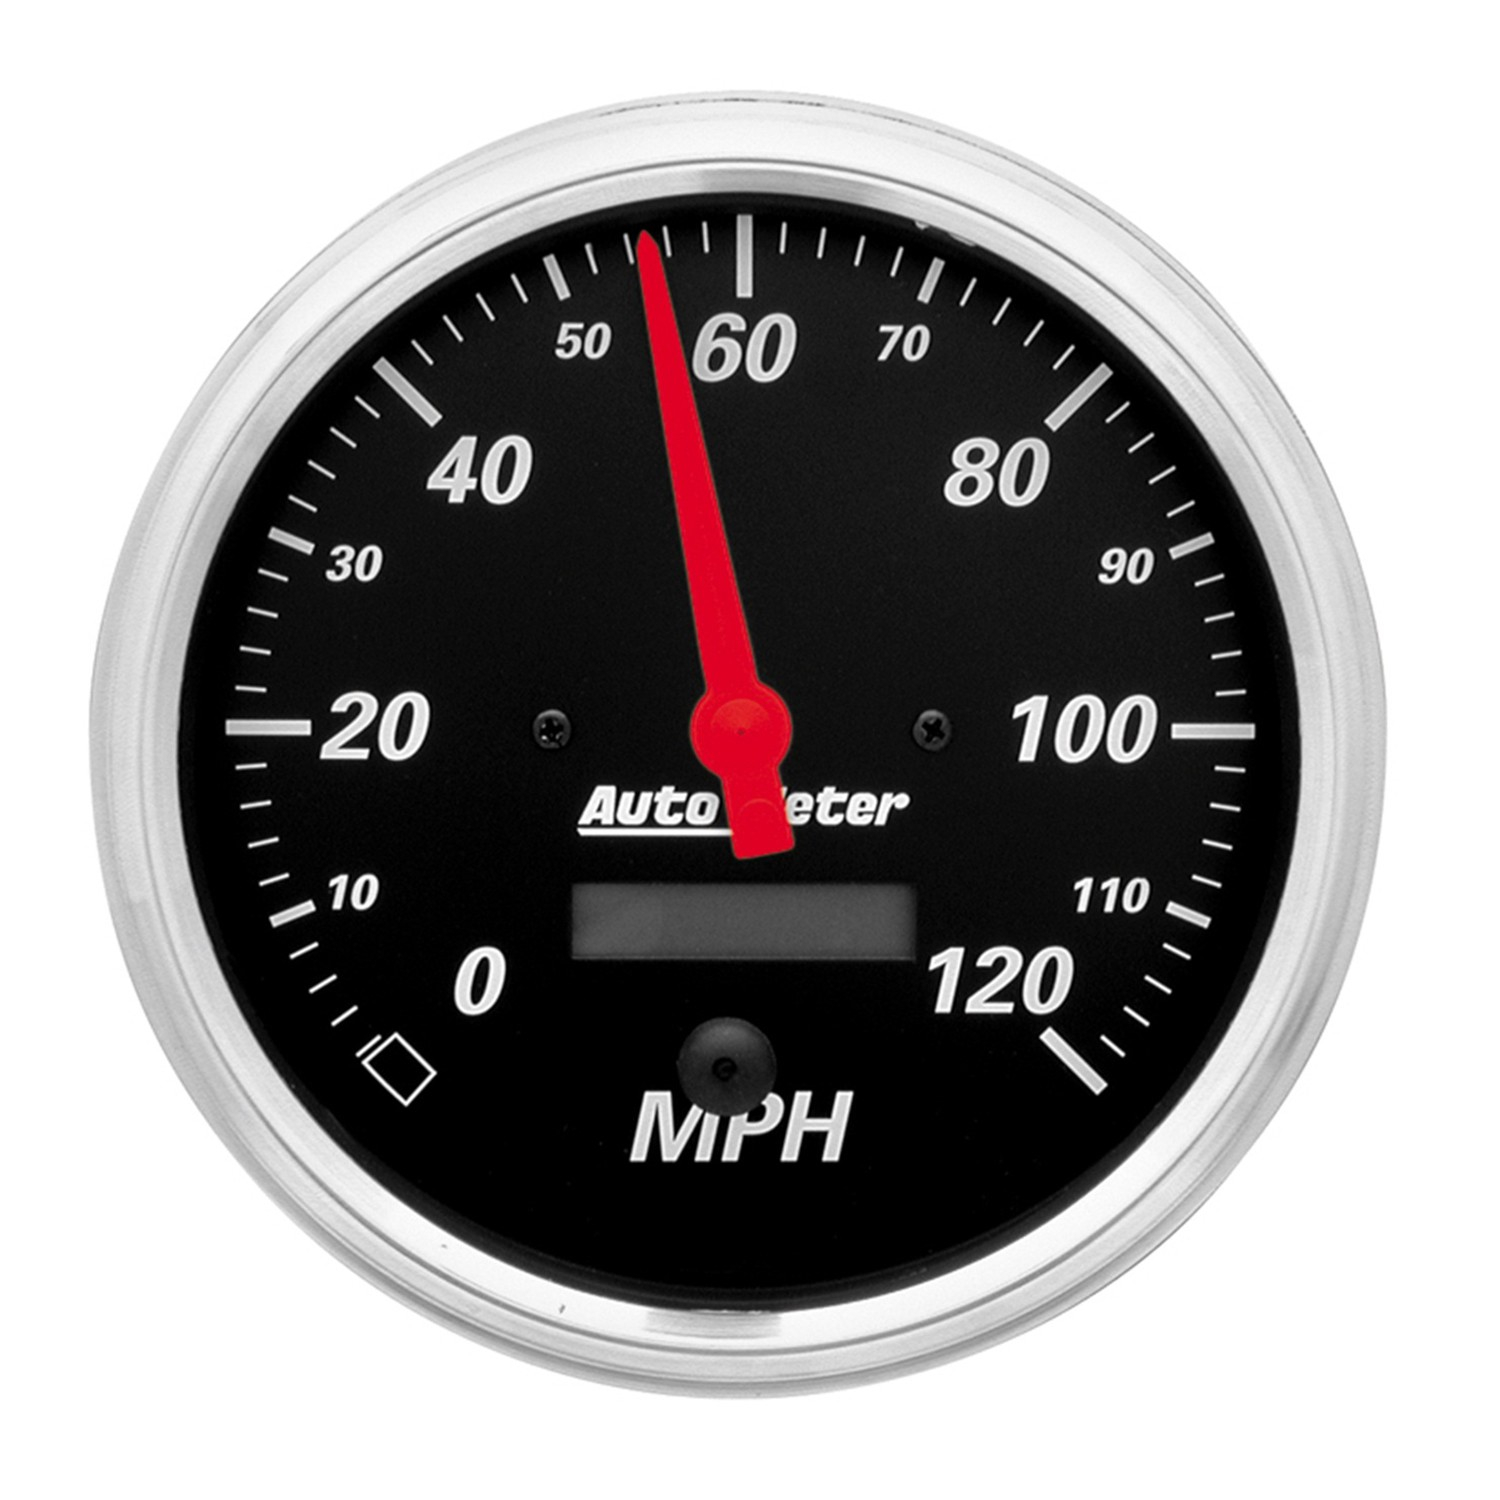 Autometer Gps Speedometer Wiring Diagram Collection